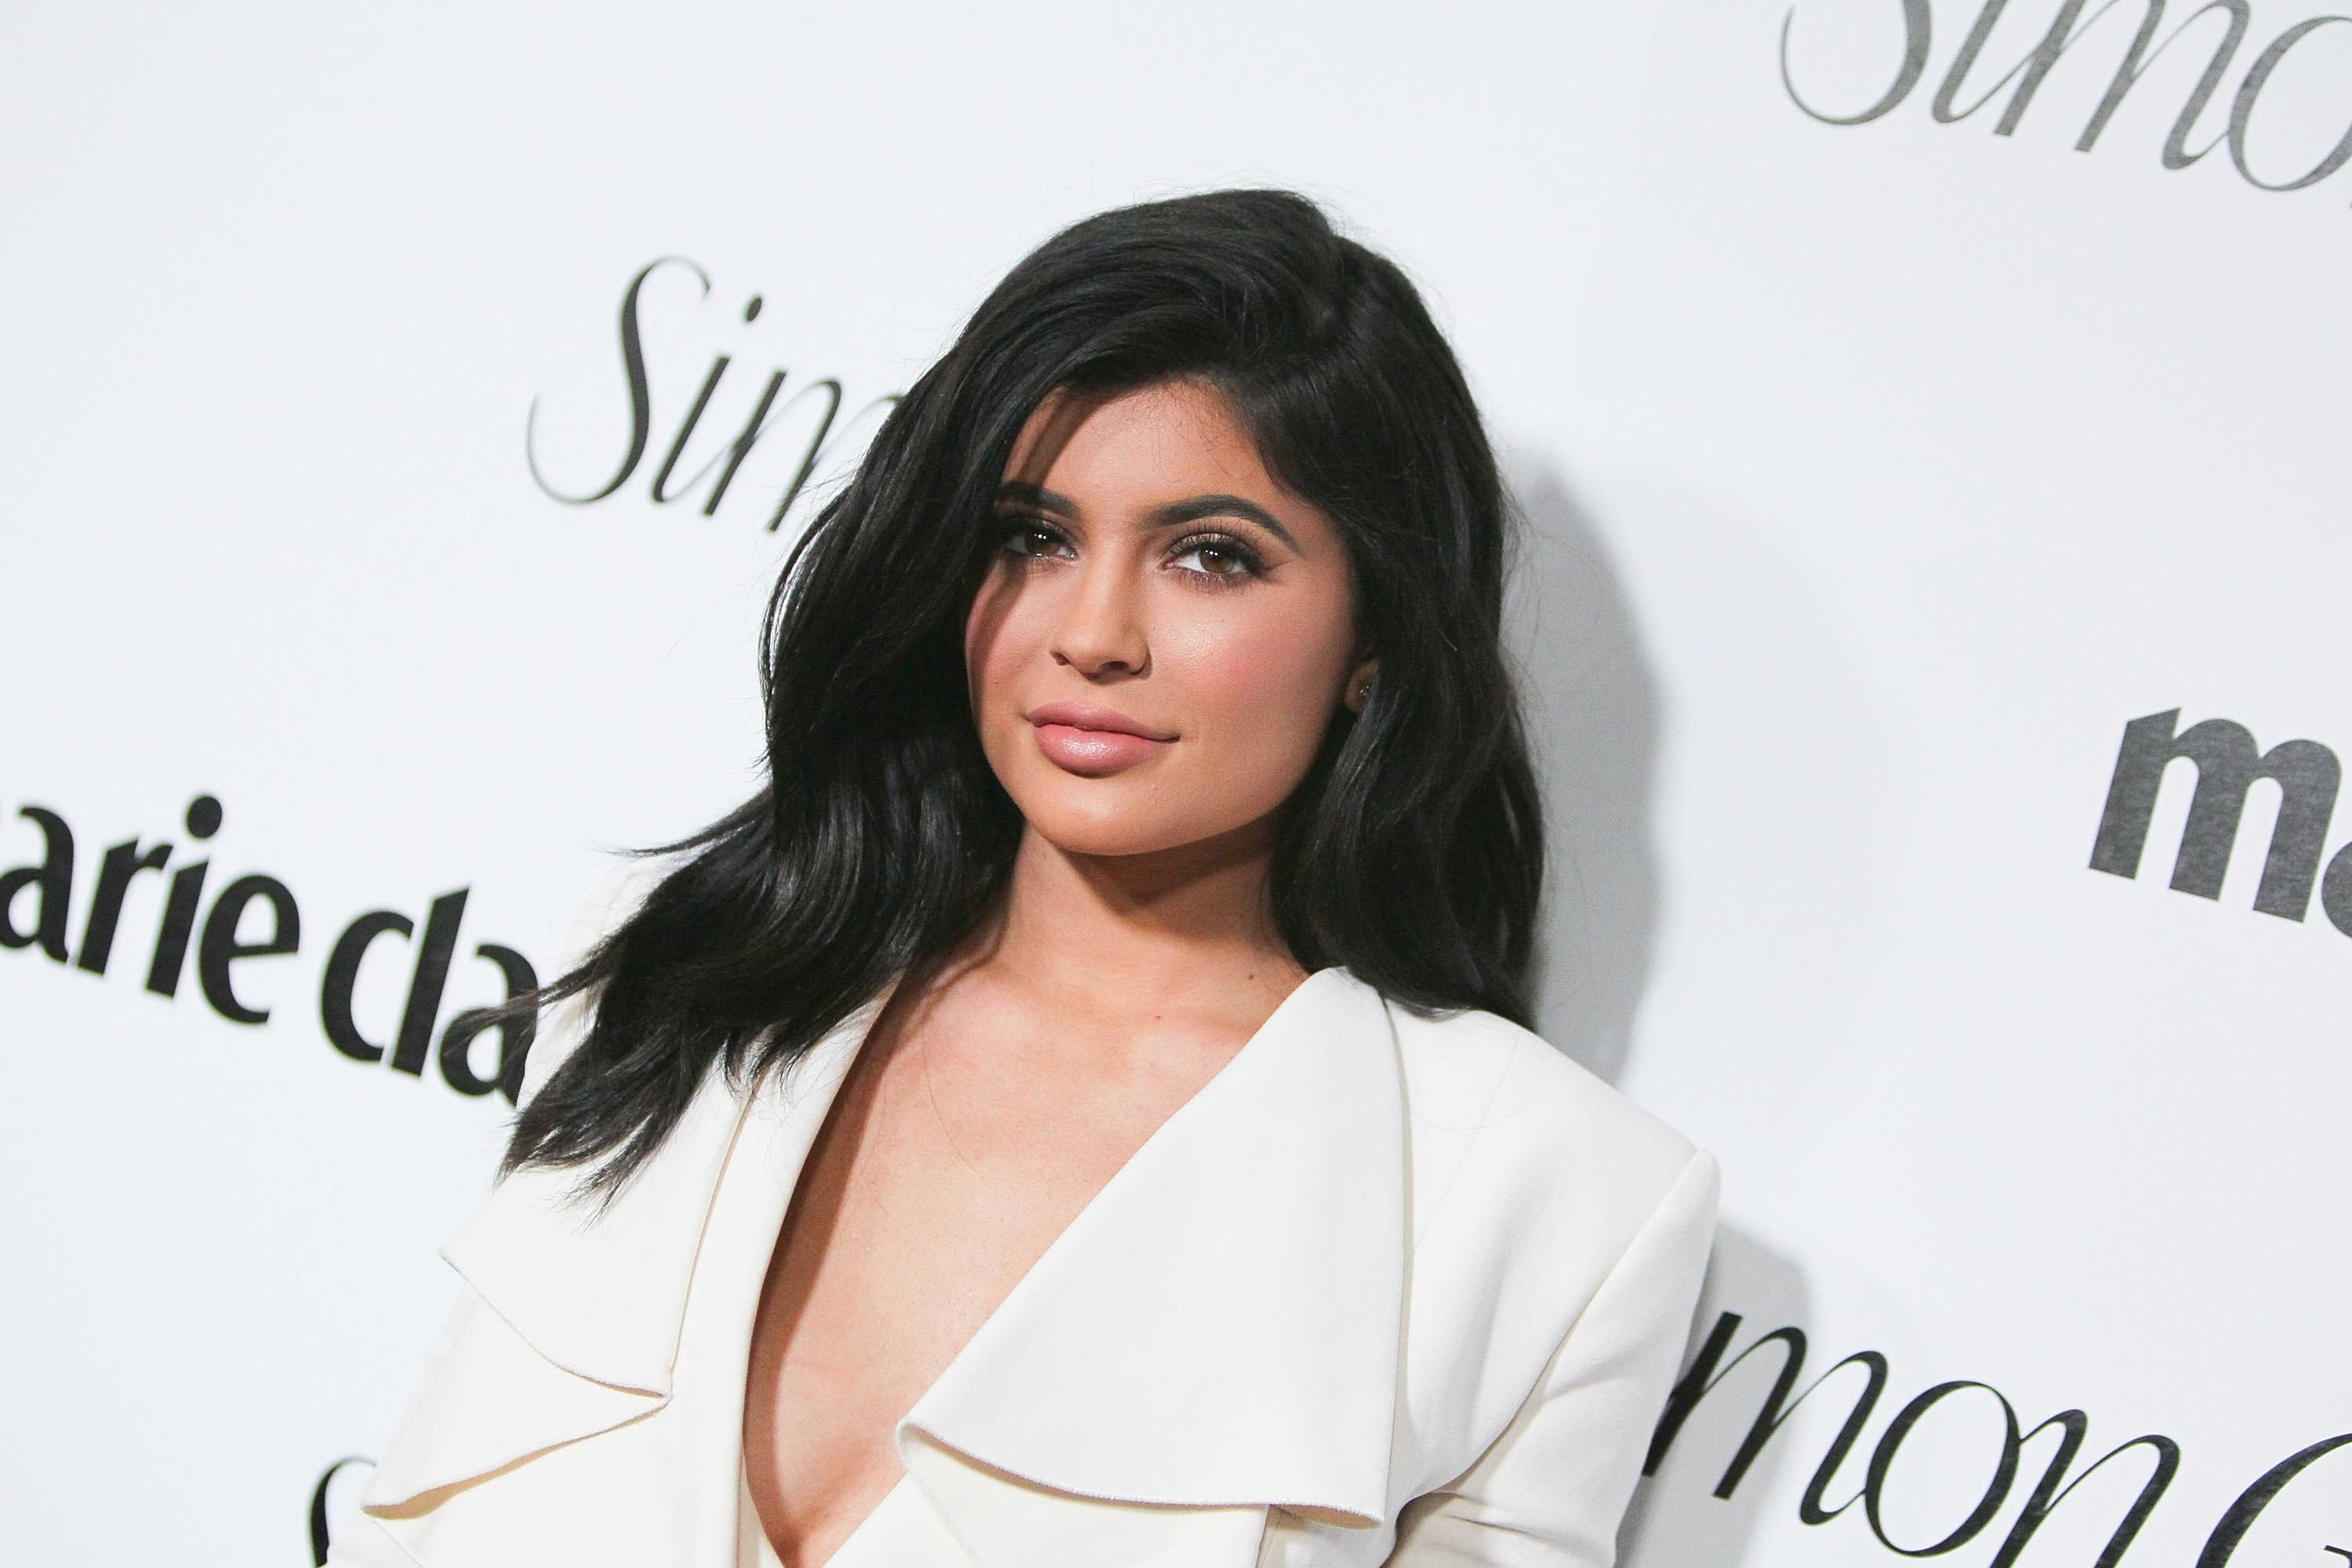 Kylie Jenner at the Marie Claire Fresh Faces Party in West Hollywood, California in 2016   Photo: Getty Images